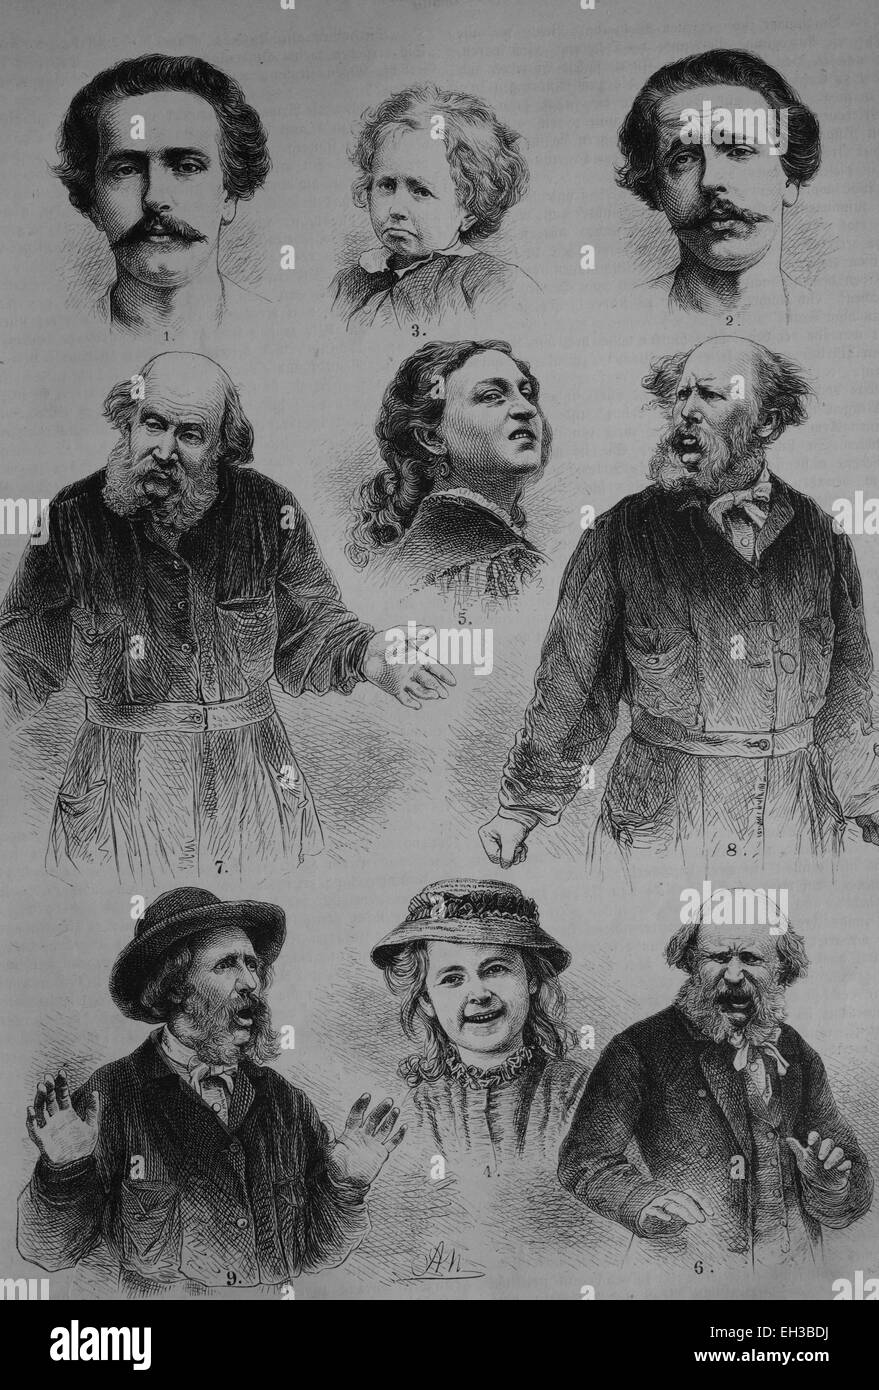 Human facial expressions, emotions, wood engraving, about 1880 - Stock Image